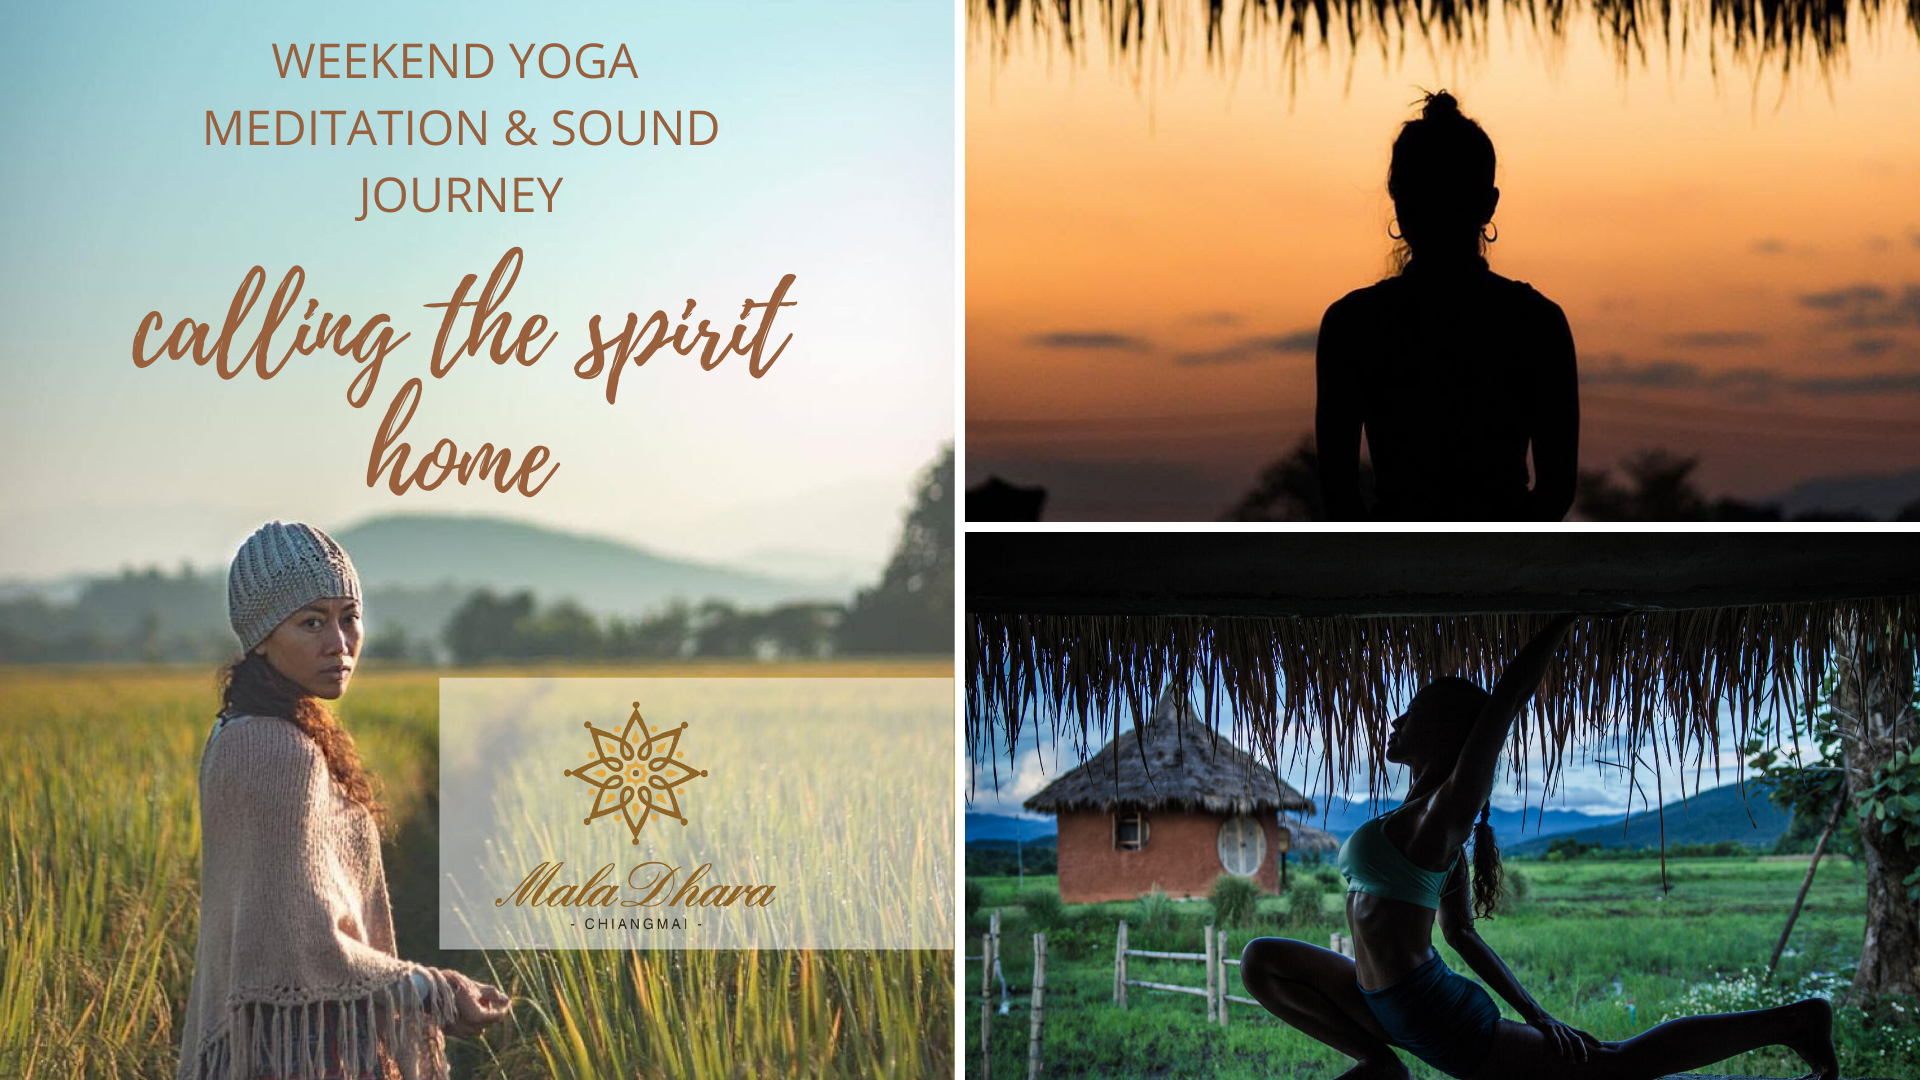 Calling the Spirit Home Weekend Yoga Meditation & Sound Journey